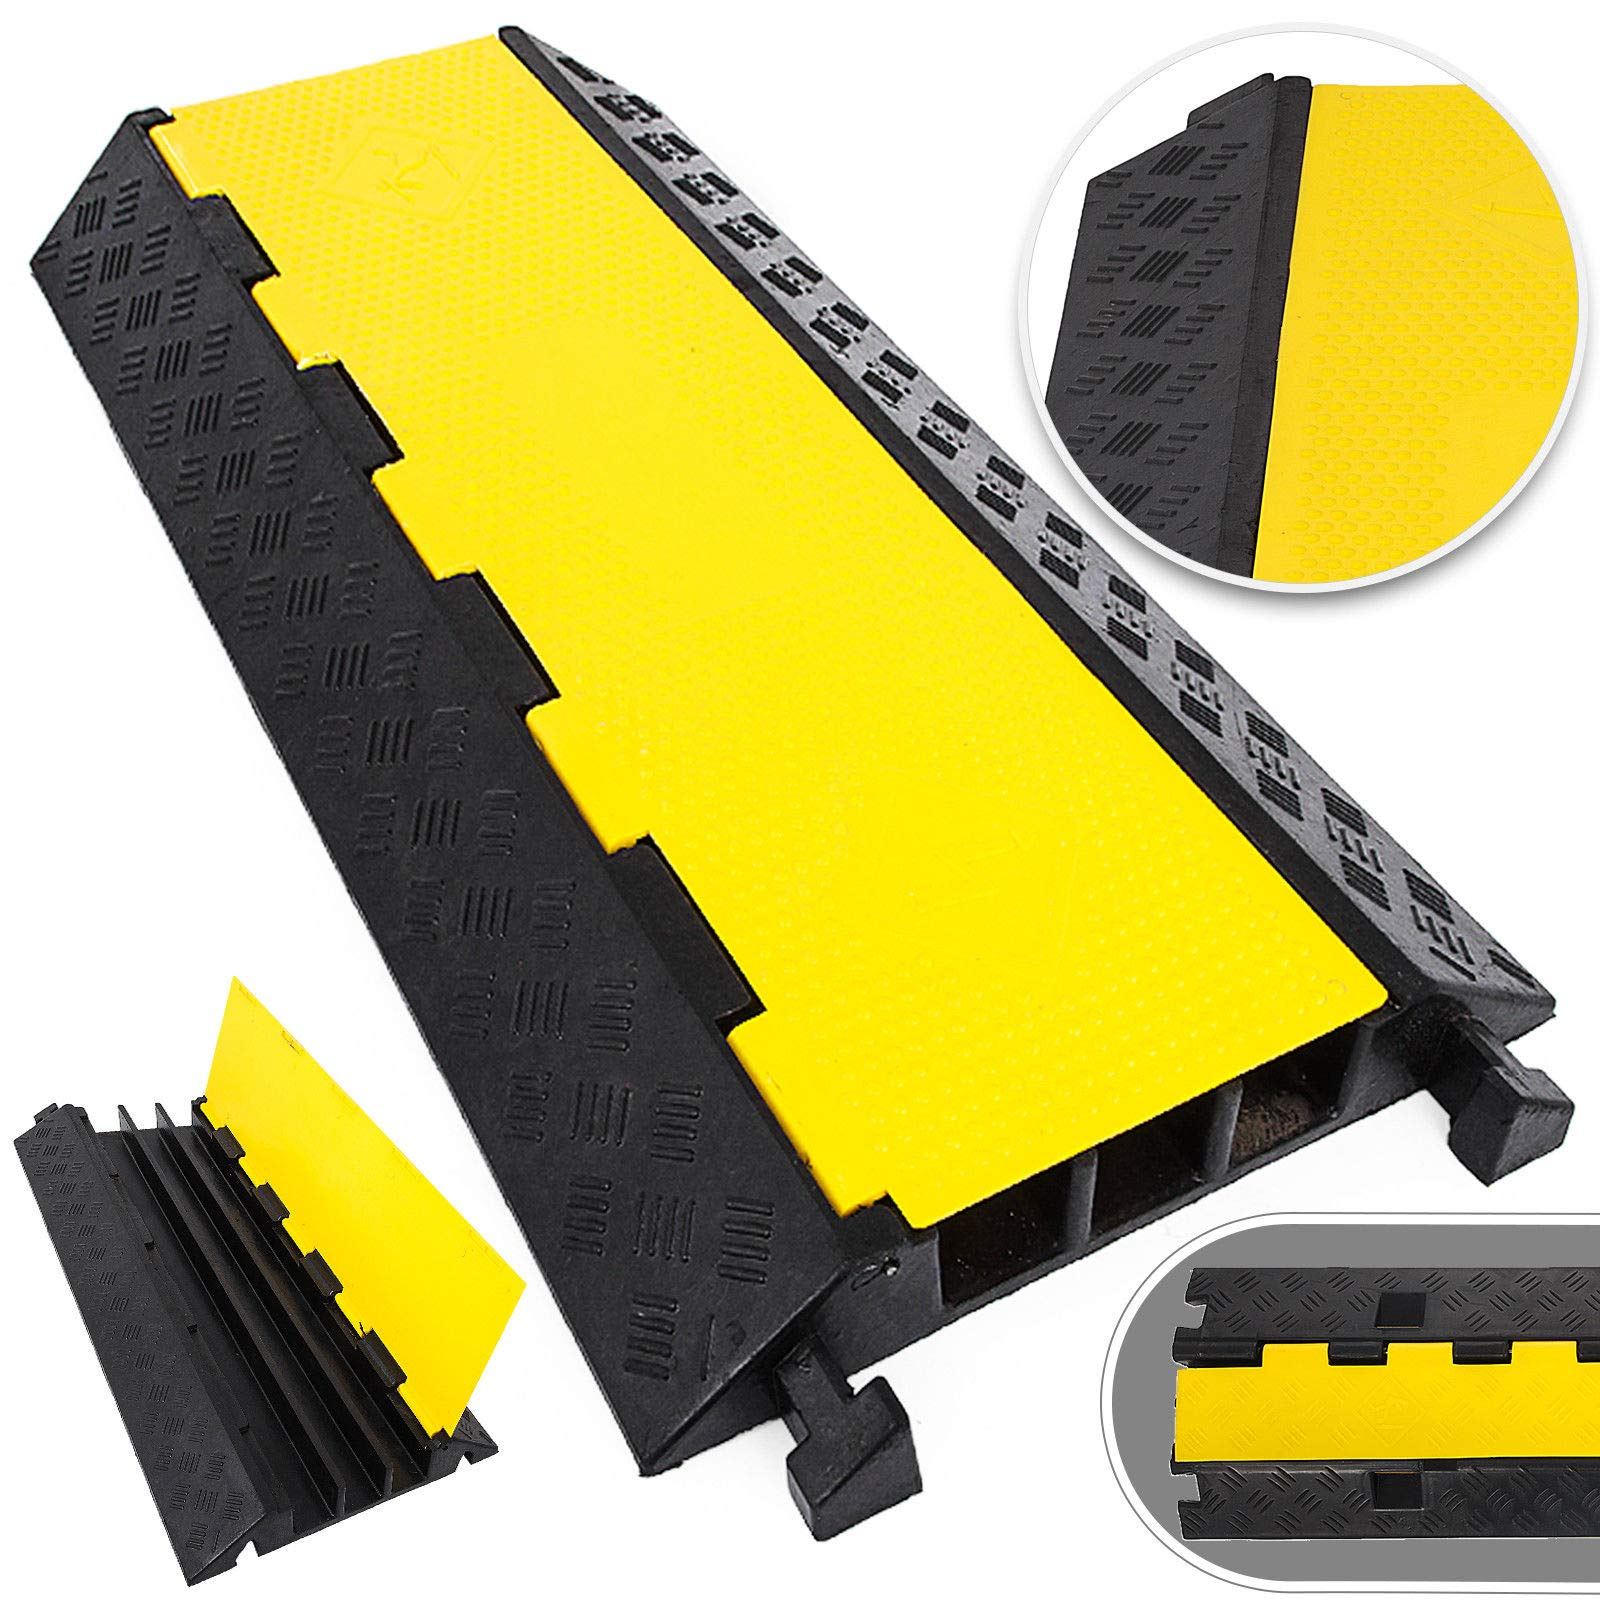 Large 3-Channel Cable Protectors Ramp Heavy Duty 20 Tons Load Capacity Rubber Speed Bumps for Driveway Hose Outdoor Wire Power Lines Electrical Cord Extension Cord Cover Protective Ramps